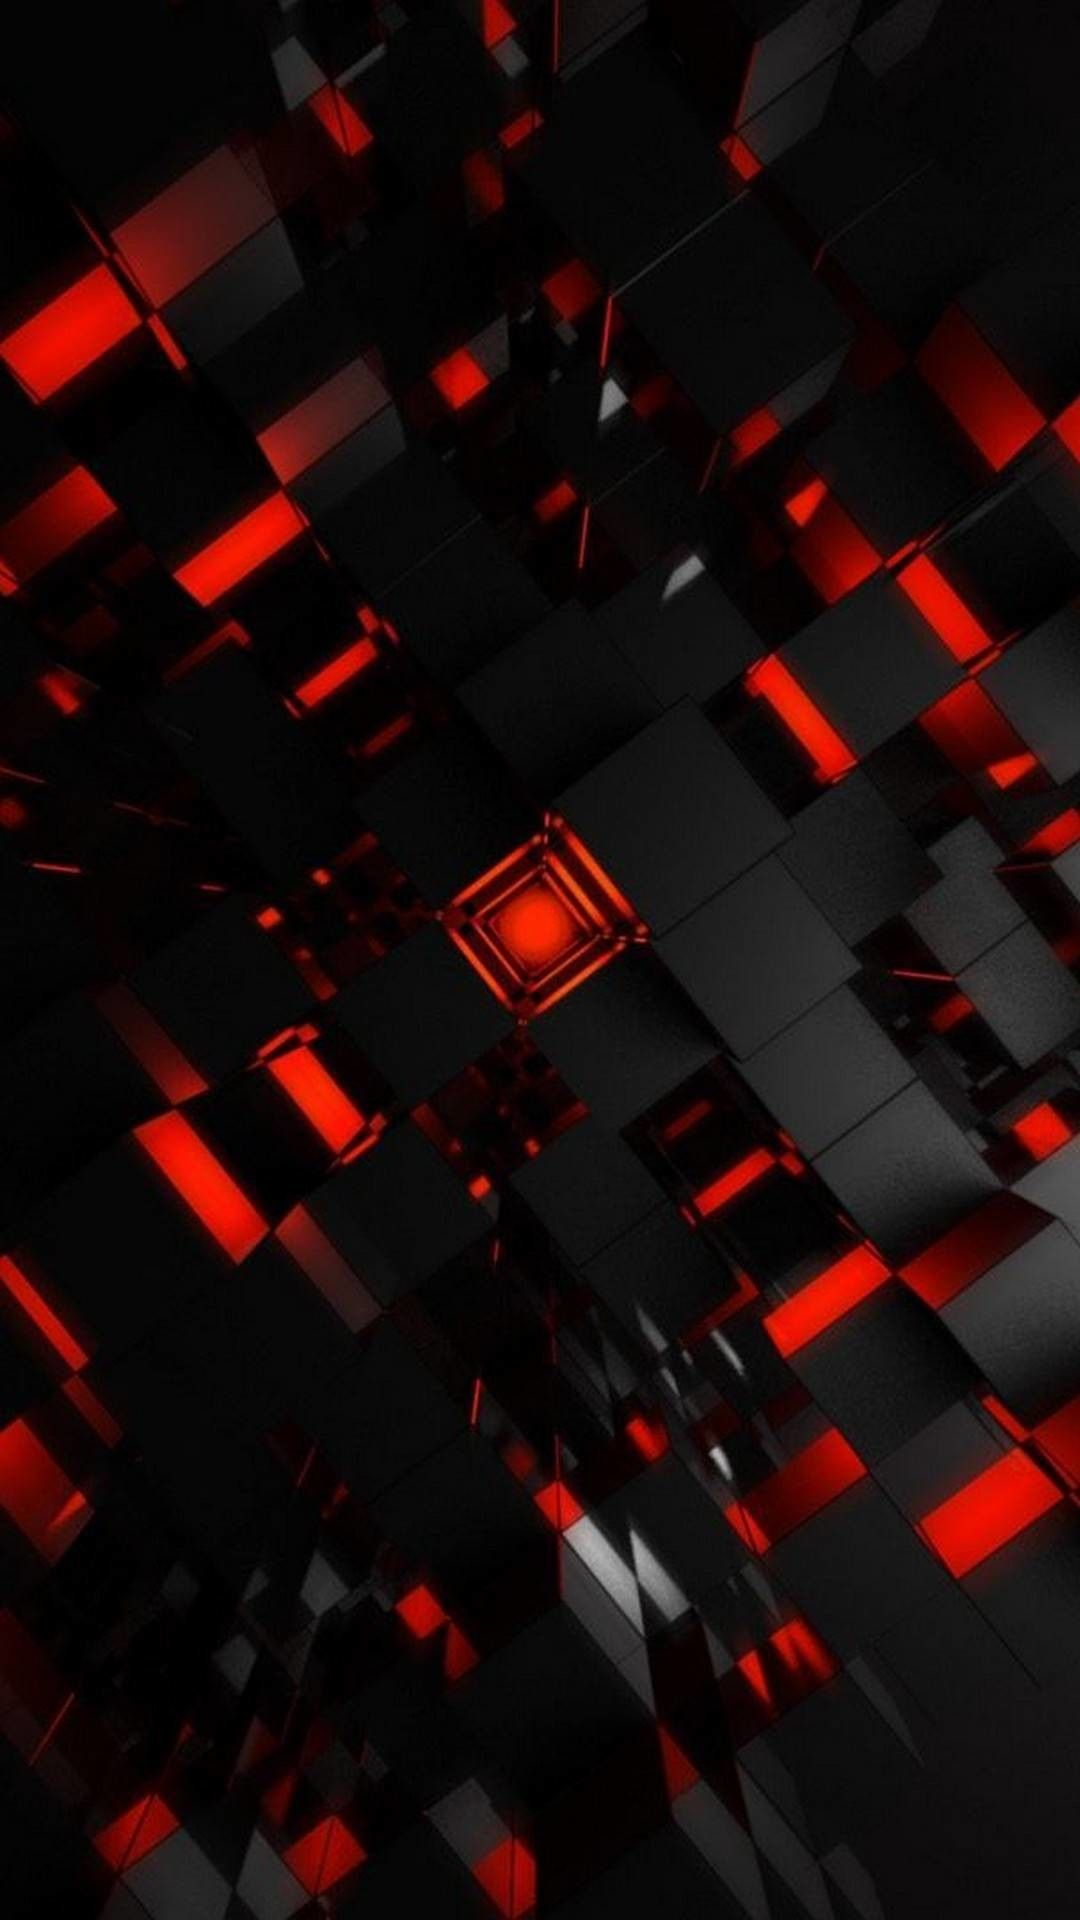 Cool Black White Red Wallpaper Hd Red Wallpaper Geometric Wallpaper Iphone 7 Wallpapers Black